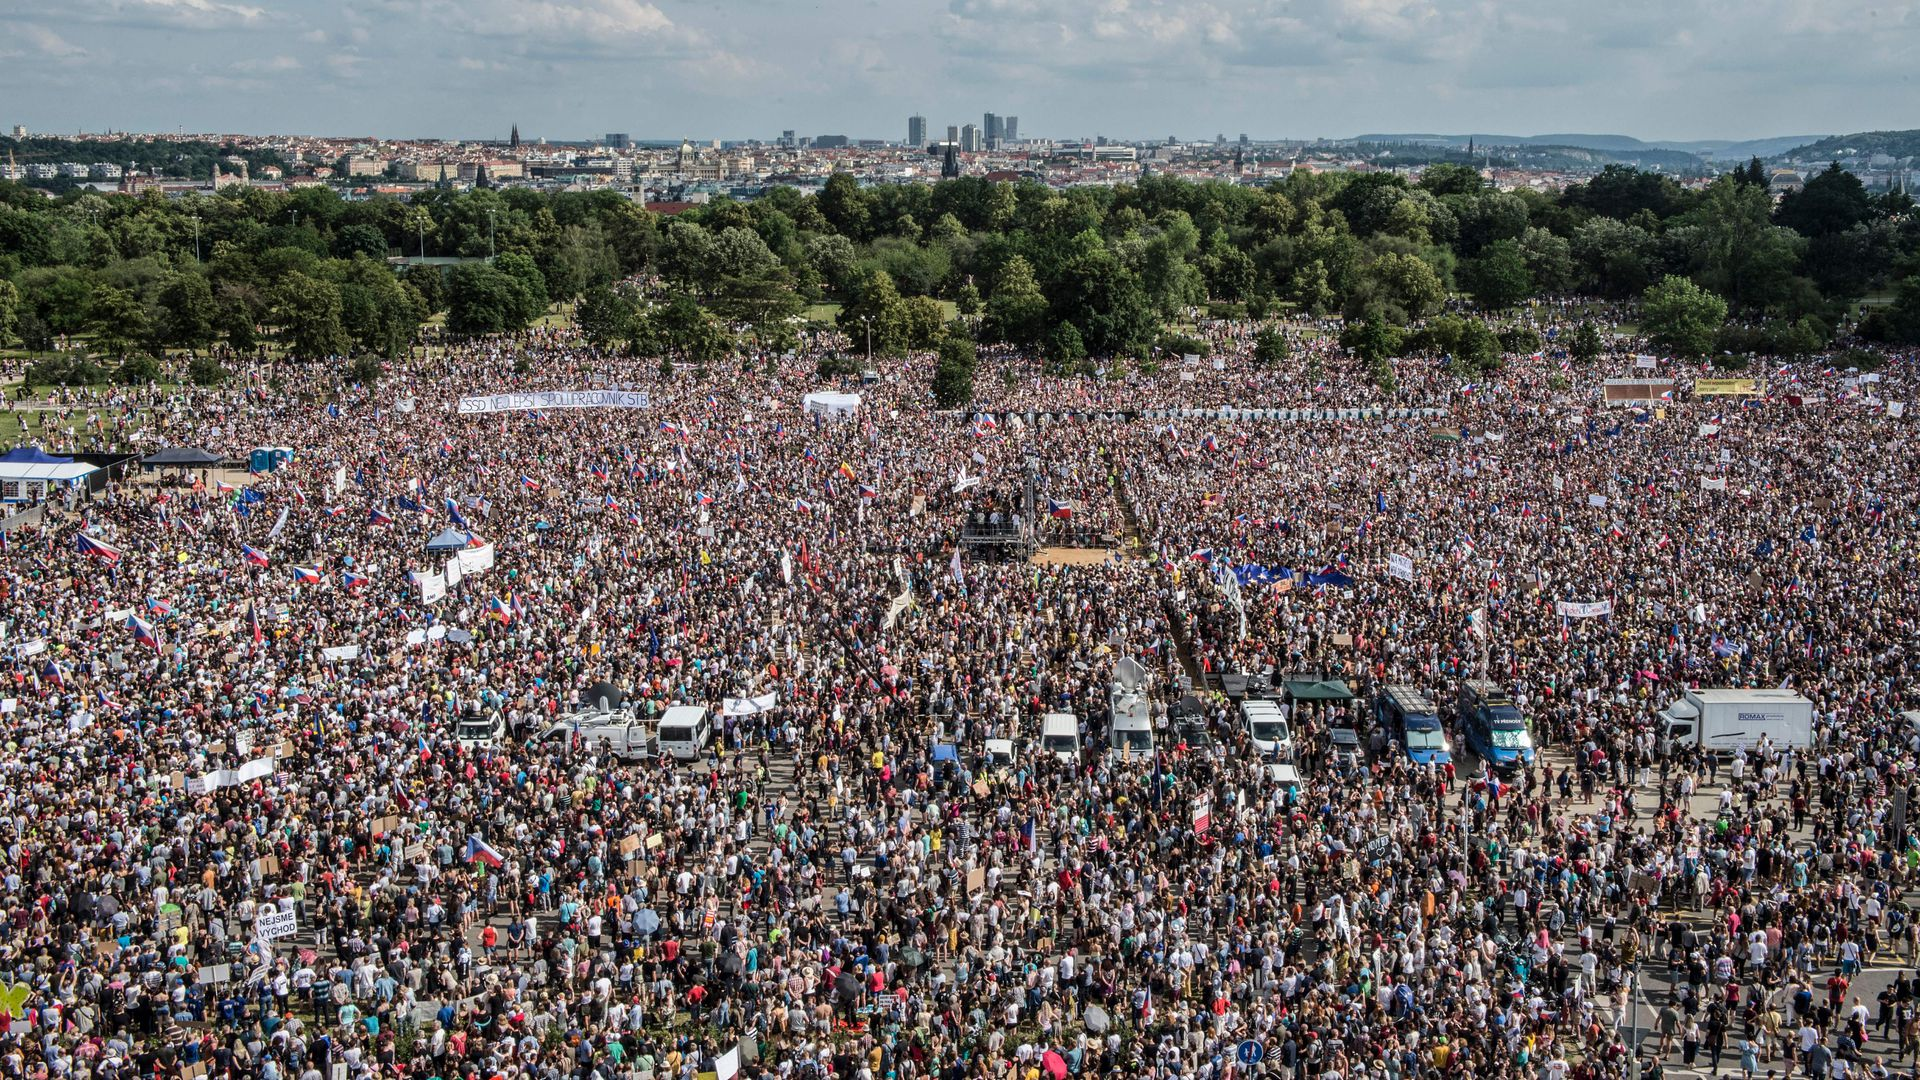 People attend a rally demanding the resignation of Czech Prime Minister Andrej Babis on June 23.